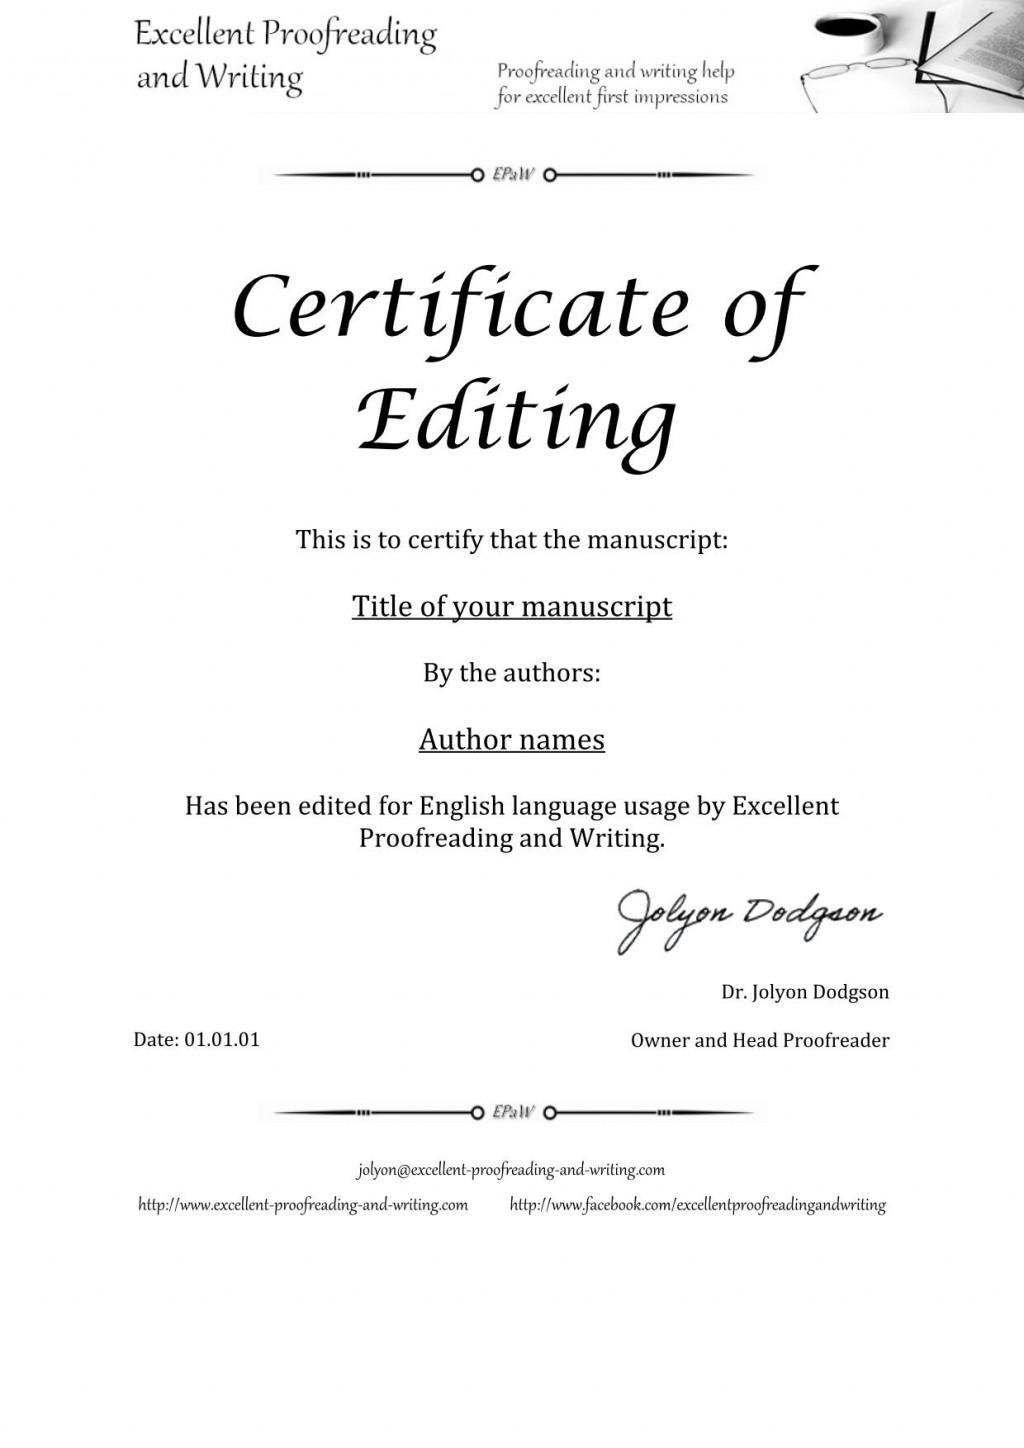 013 Essay Example Proofread Certificate Of Unique Proofreading Service Website University Large